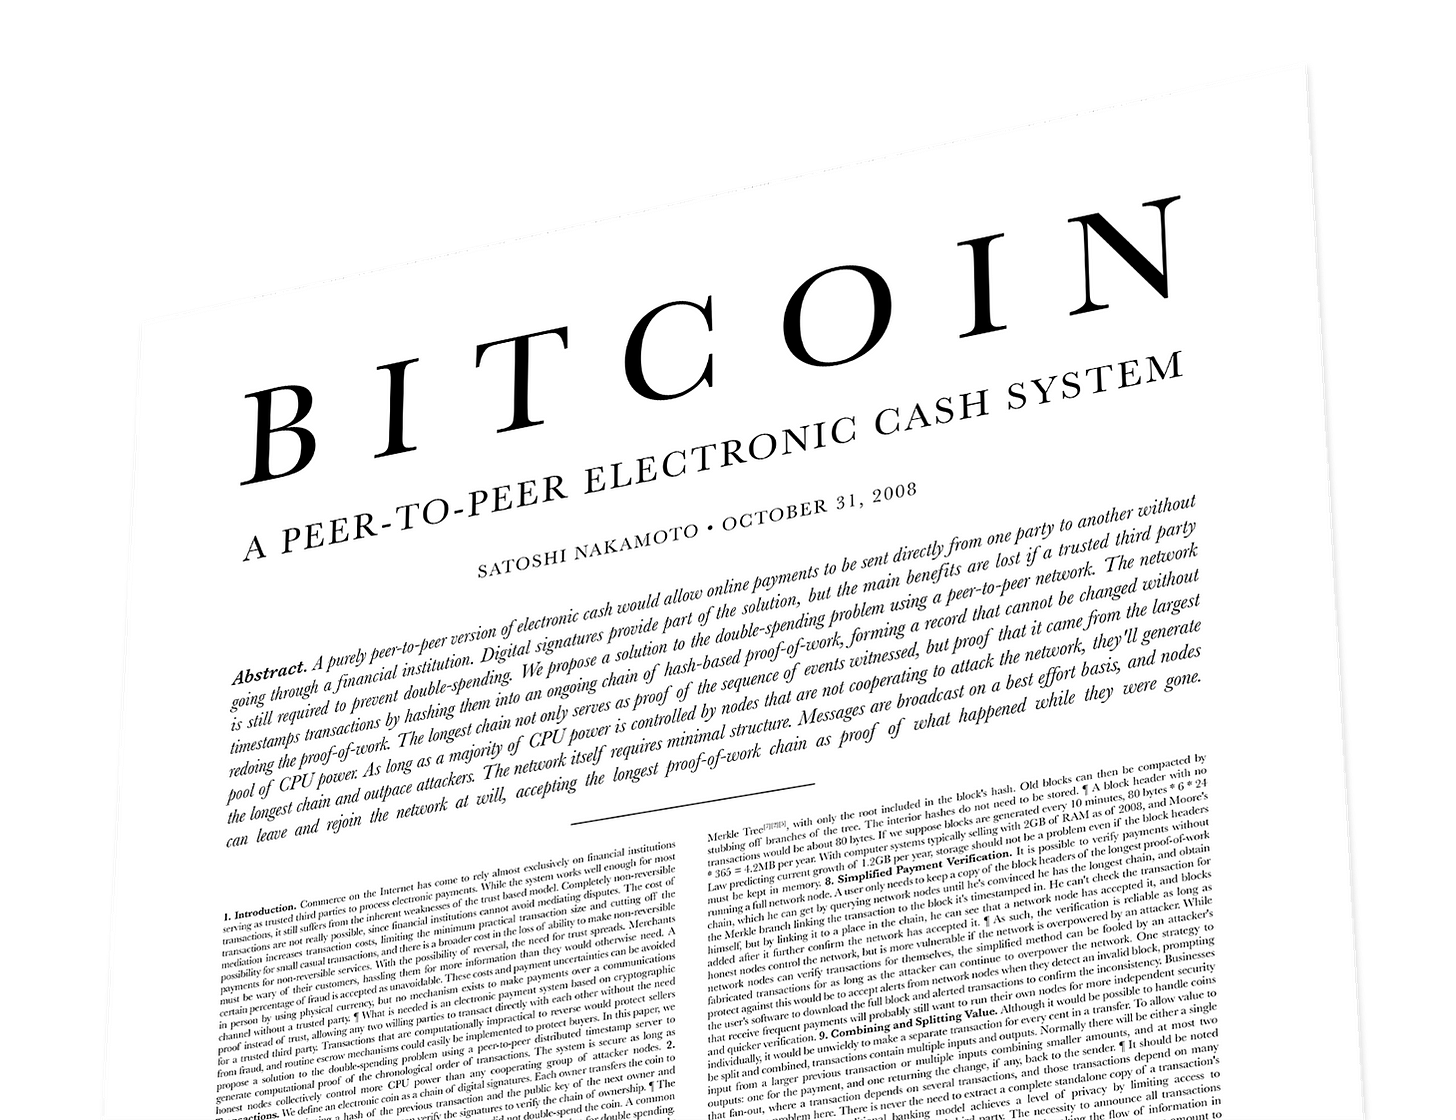 The Bitcoin Whitepaper after Ten Years | Clark Moody Bitcoin